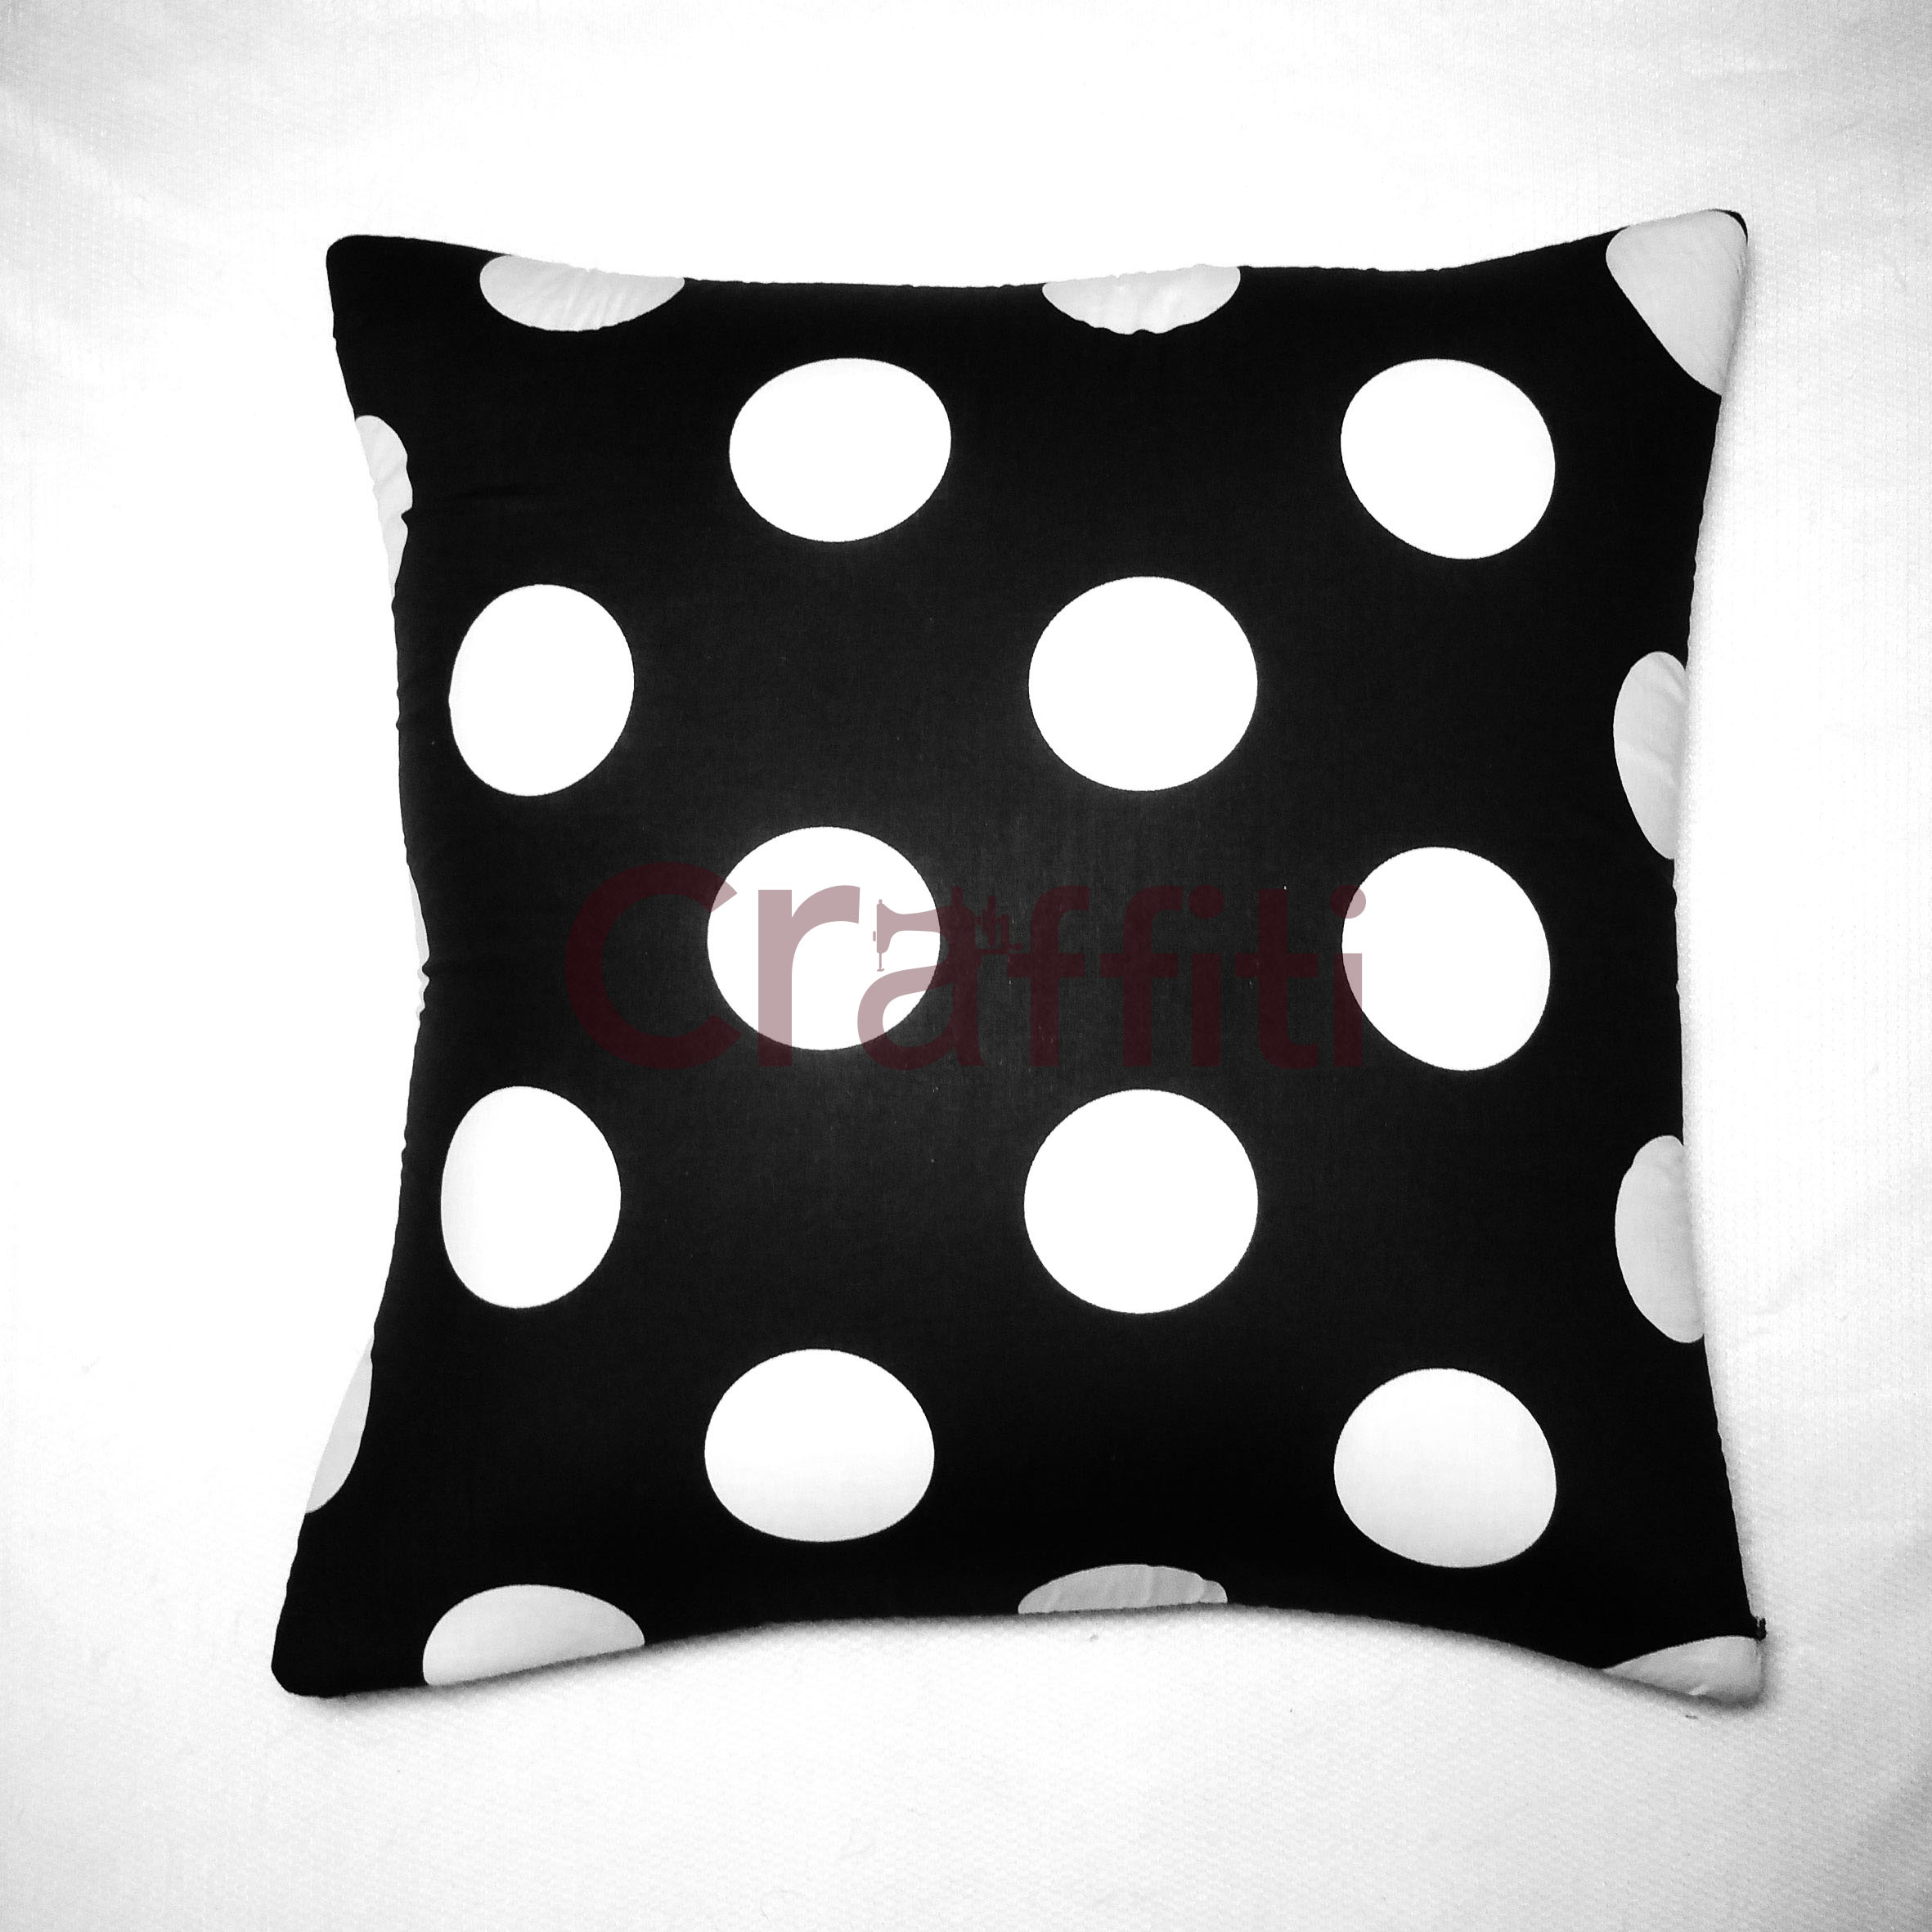 BIG Black Polkadot - Cushion Cover